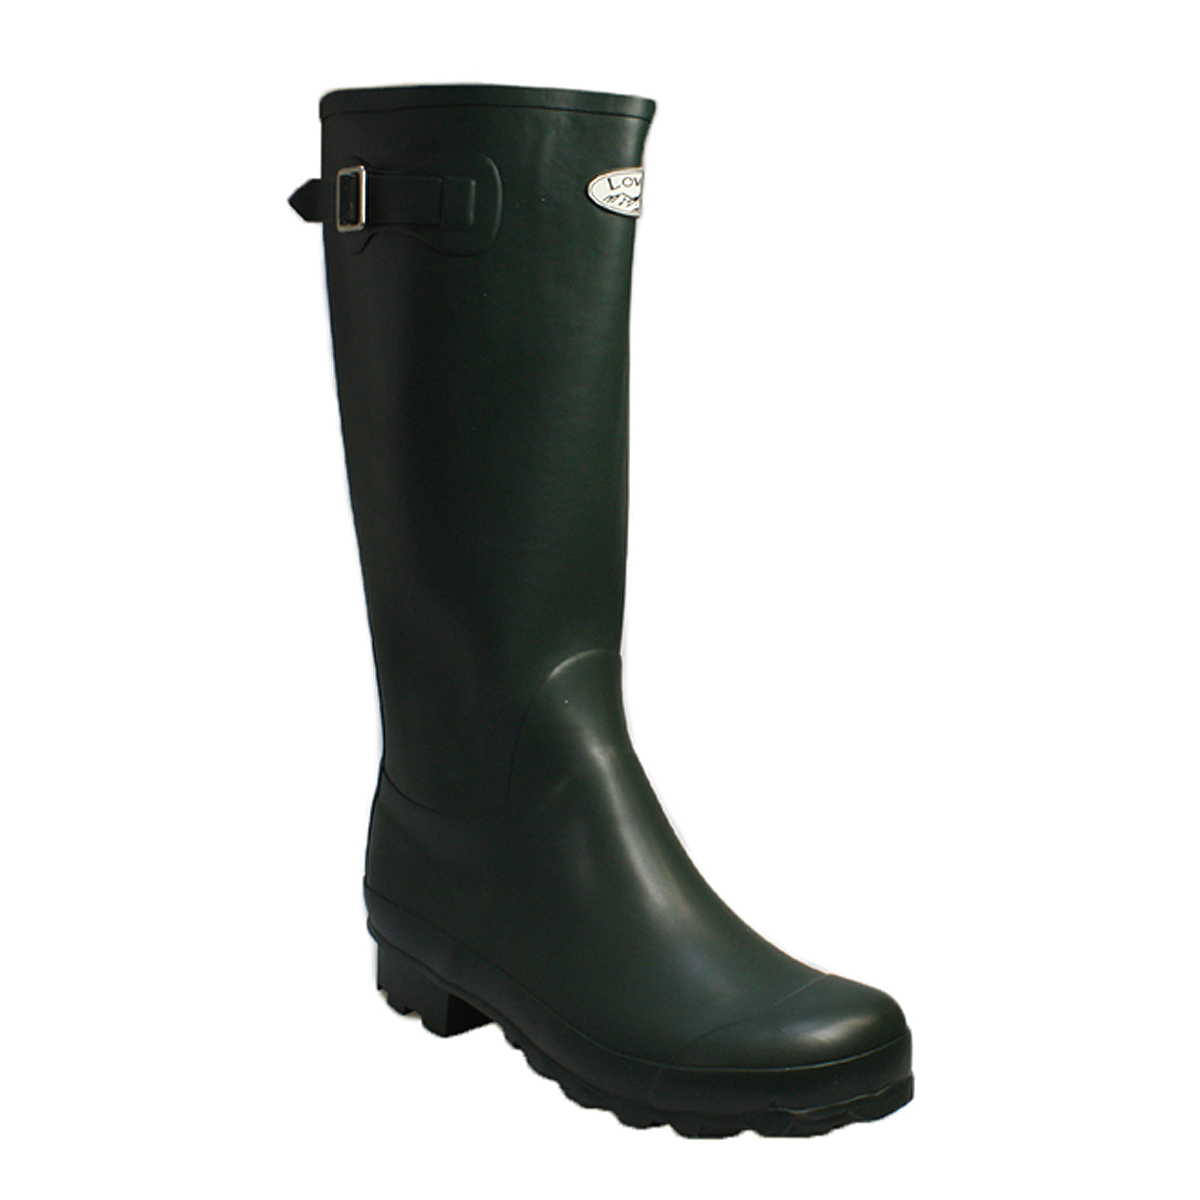 lowther by green wellington rubber boots knee